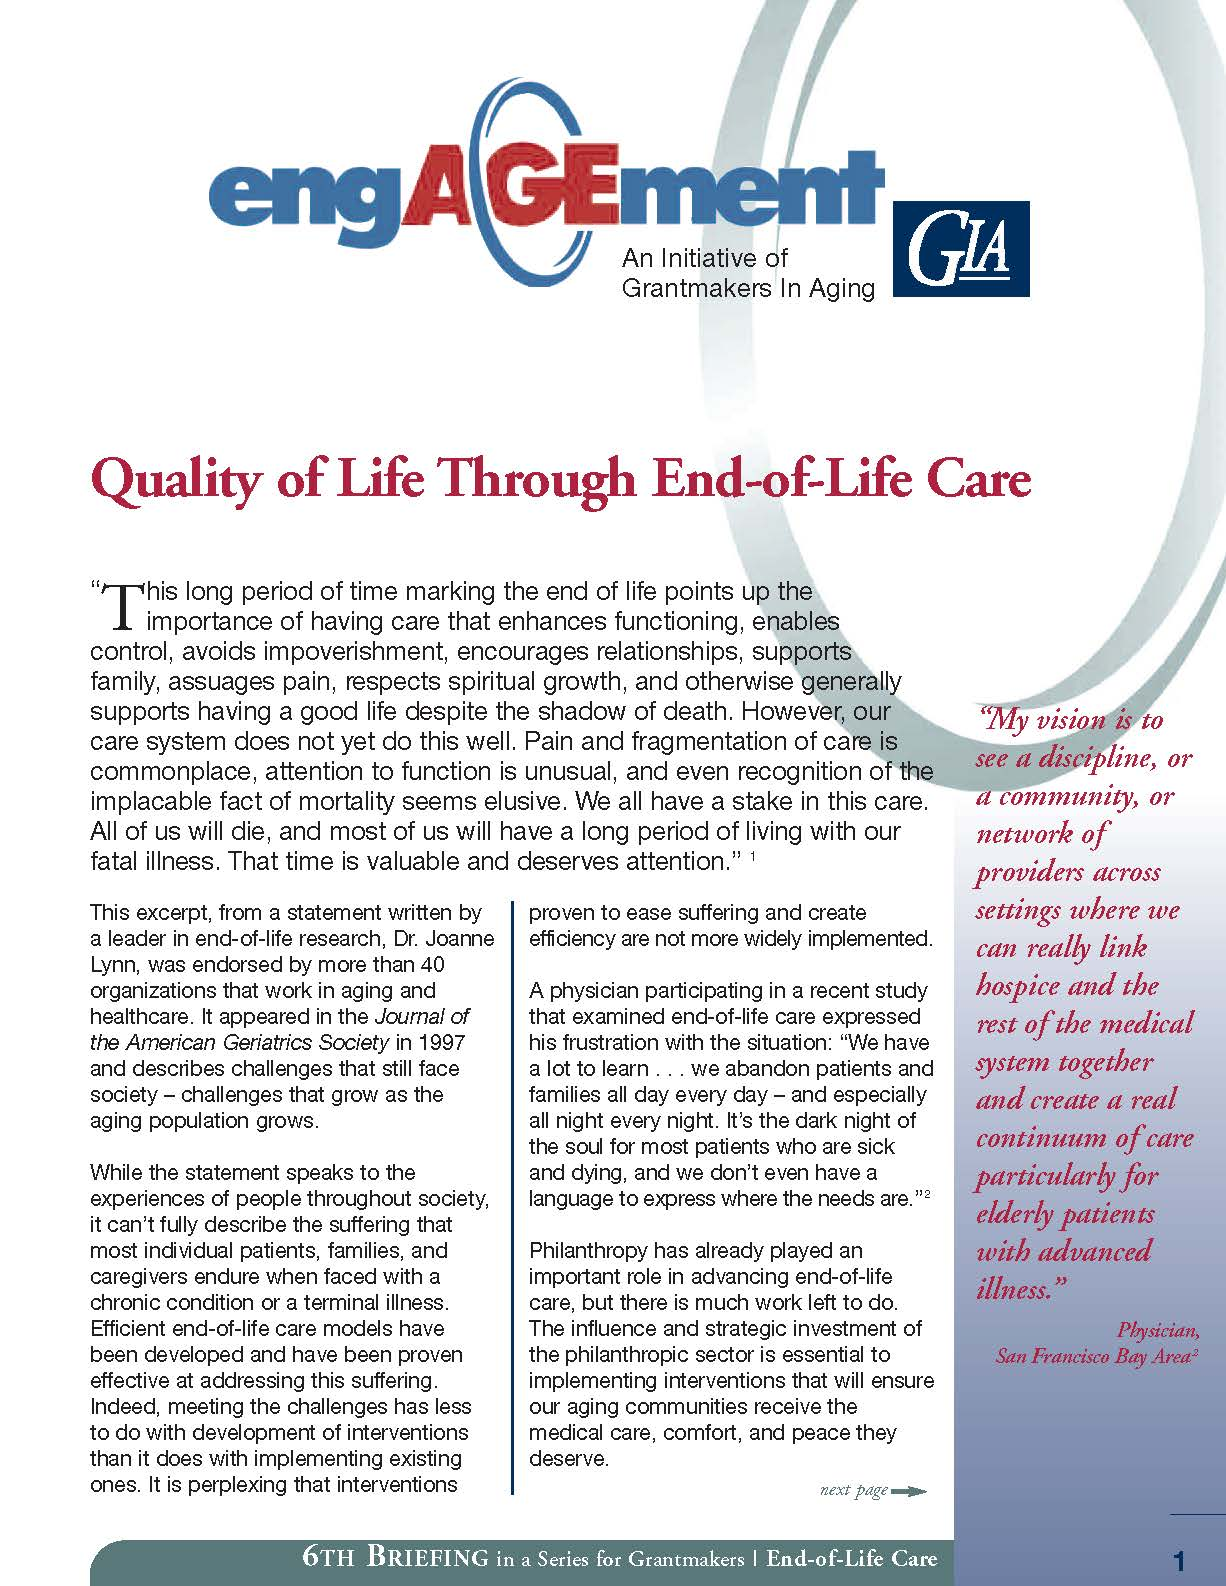 Quality of Life Through End of Life Care_Page_1.jpg